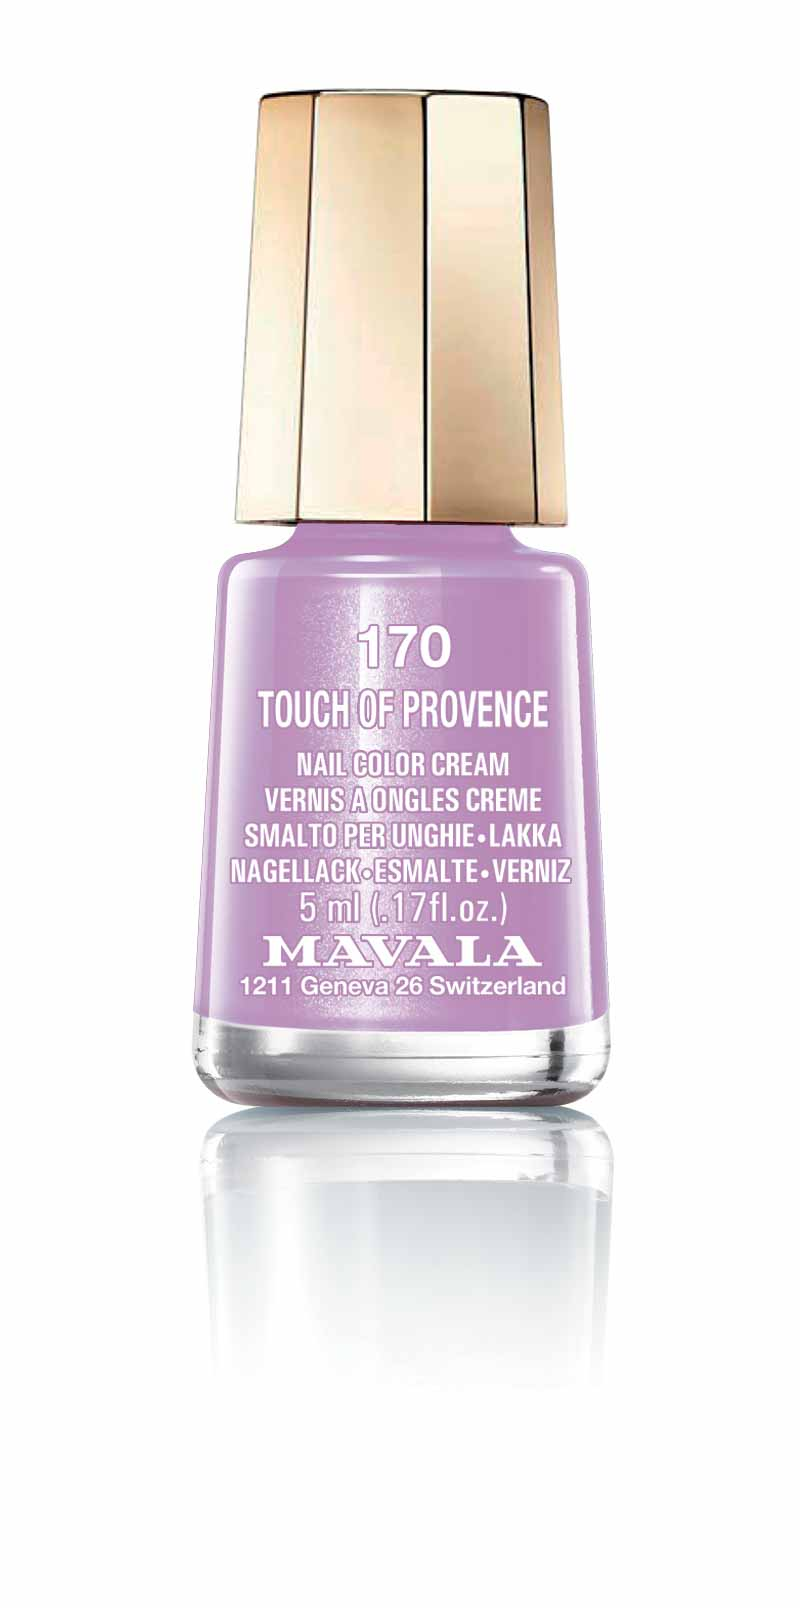 170 TOUCH OF PROVENCE